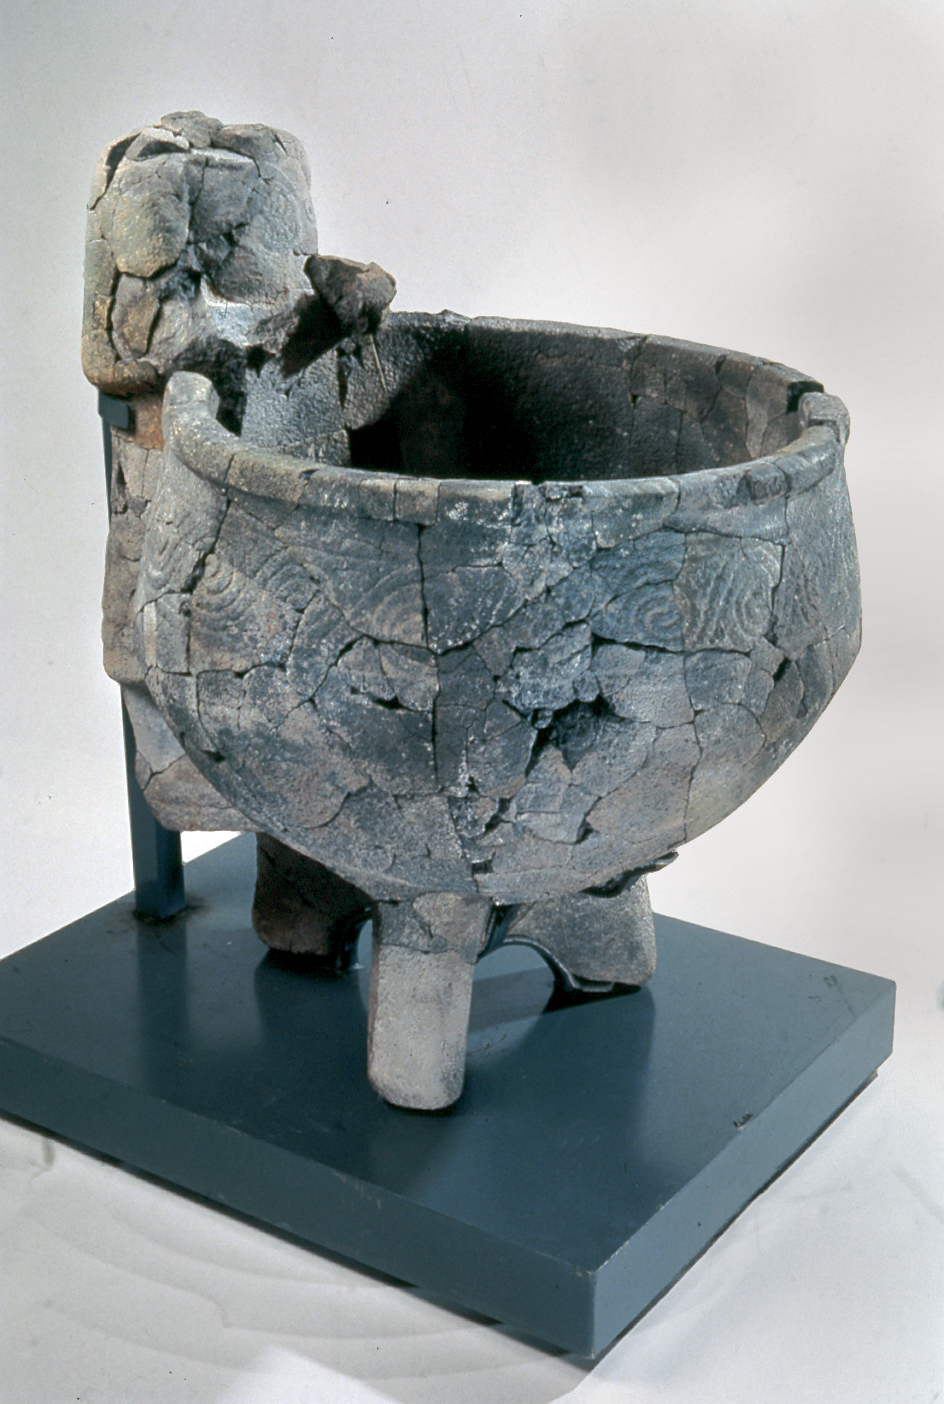 A basalt statue and a large basin, found in the Late Bronze Age Ceremonial Precinct